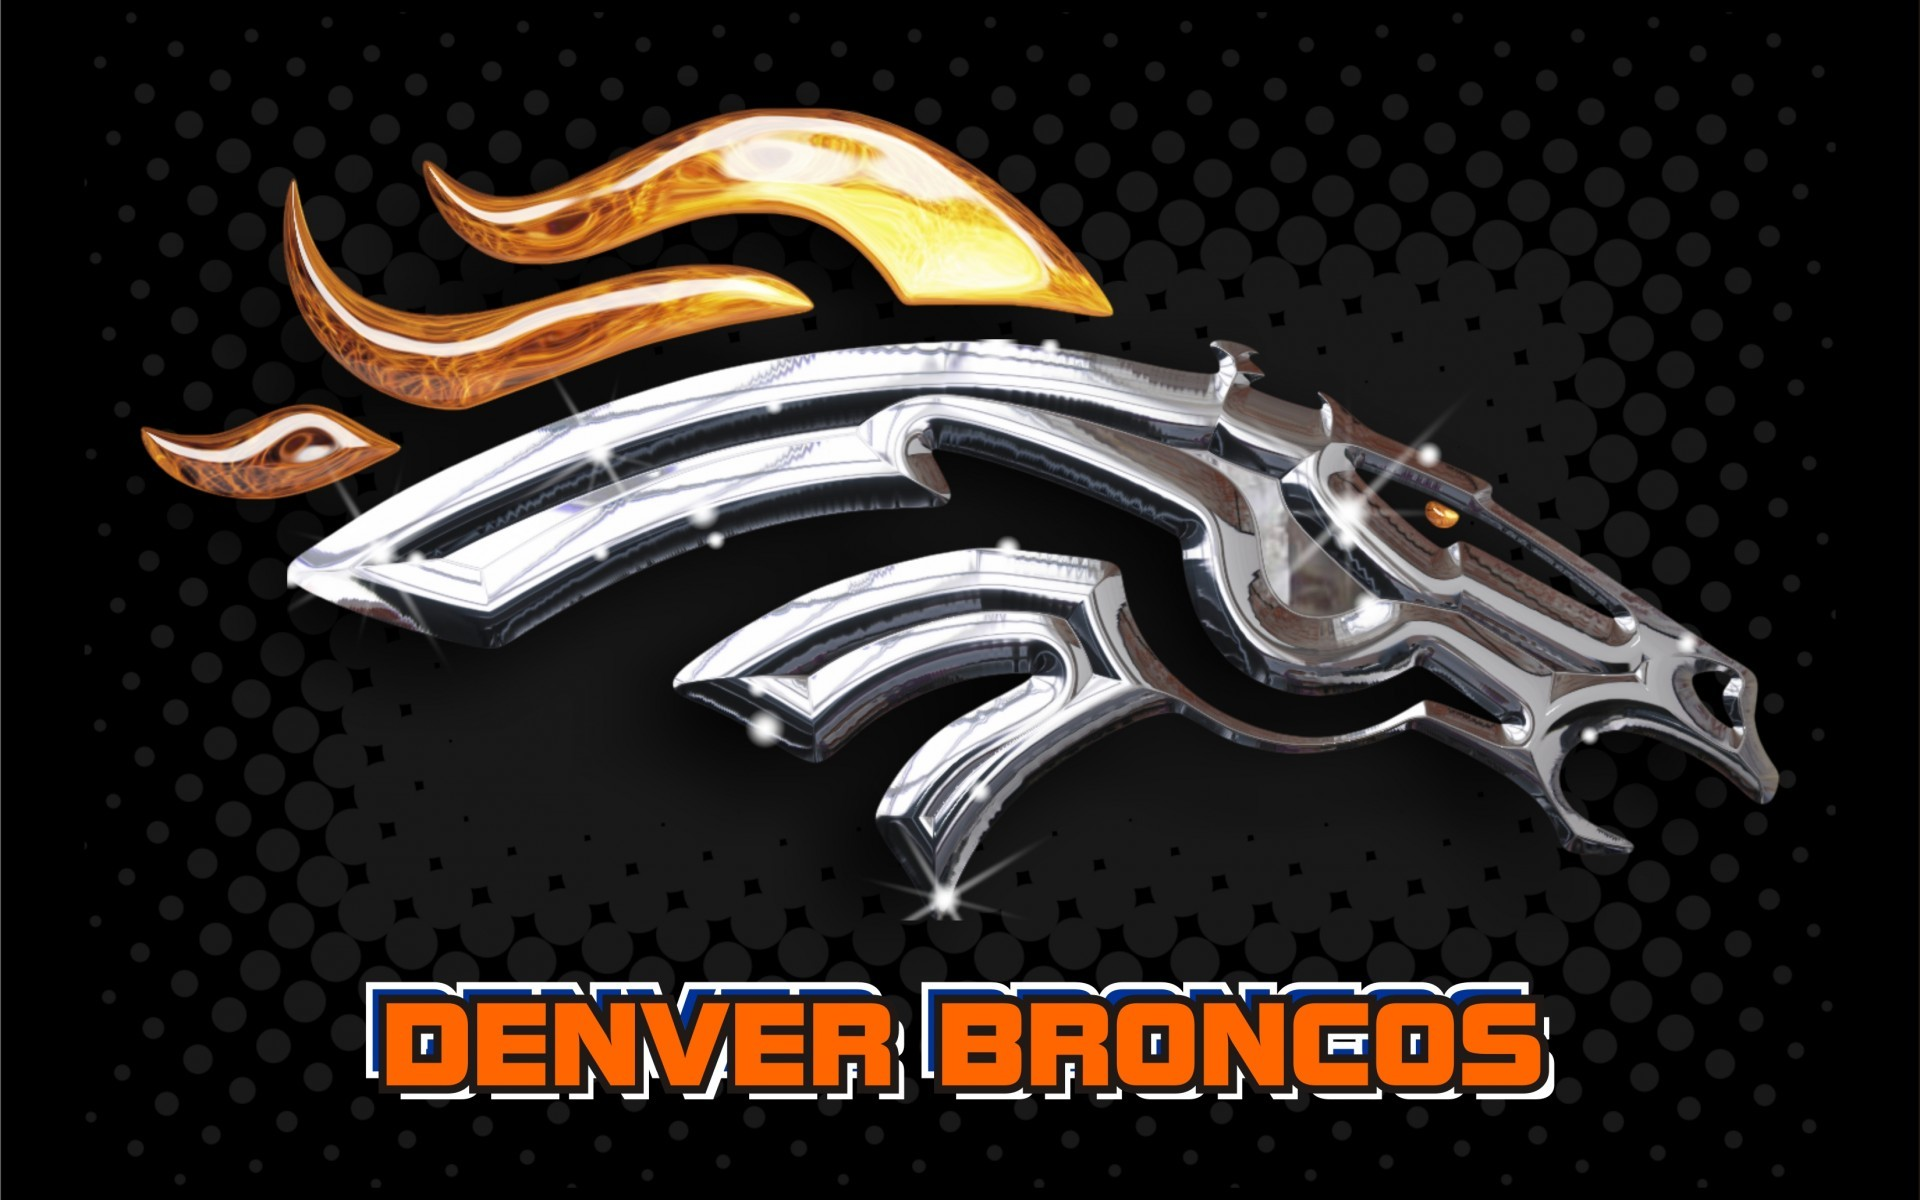 3D Logo Denver Broncos Wallpaper.